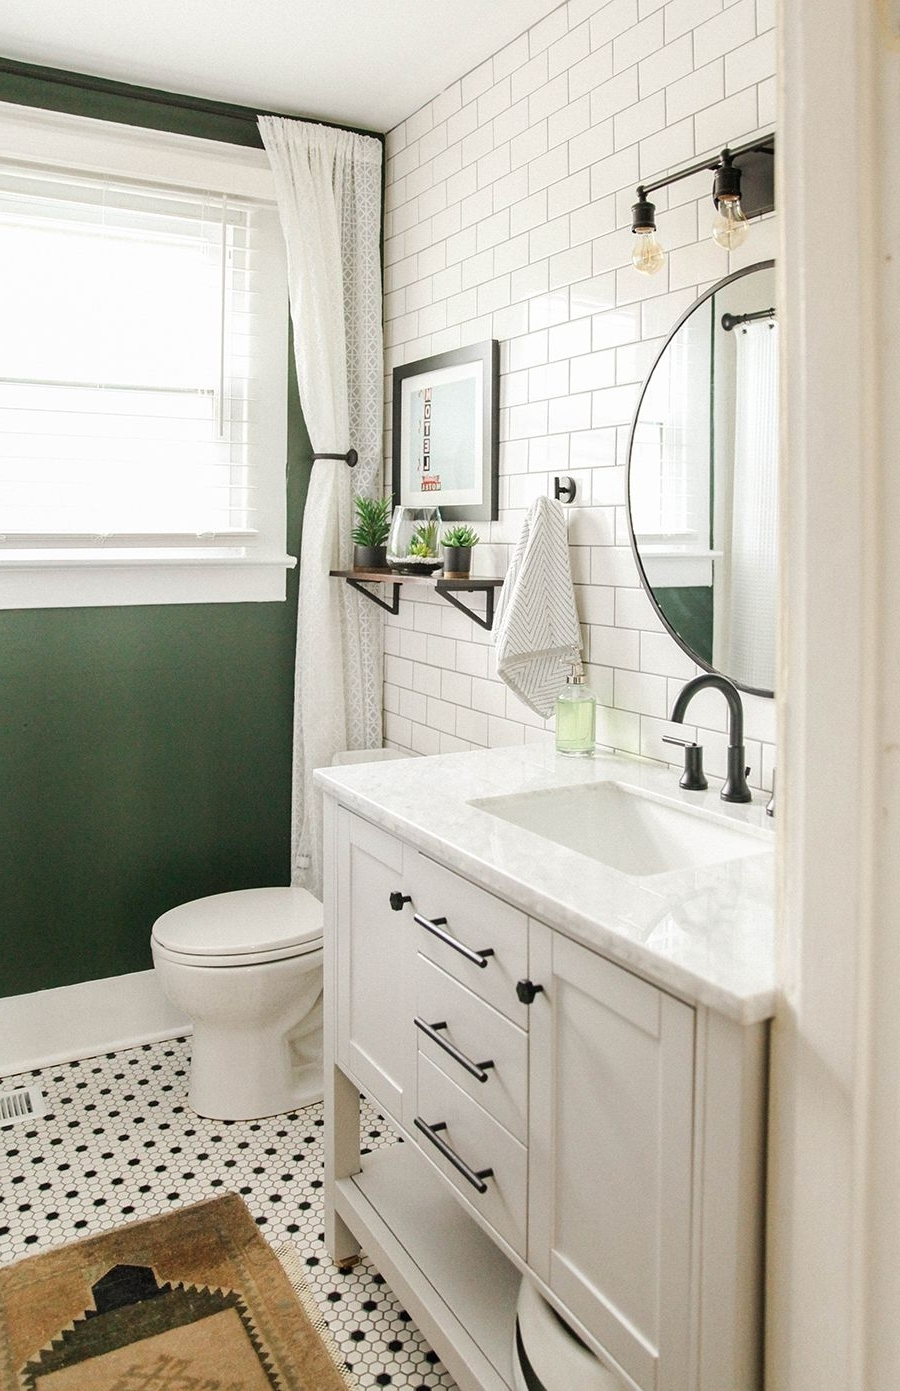 An East Nashville Airbnb + Favorite Local Spots. | In Honor 10+ Airbnb Bathroom Ideas